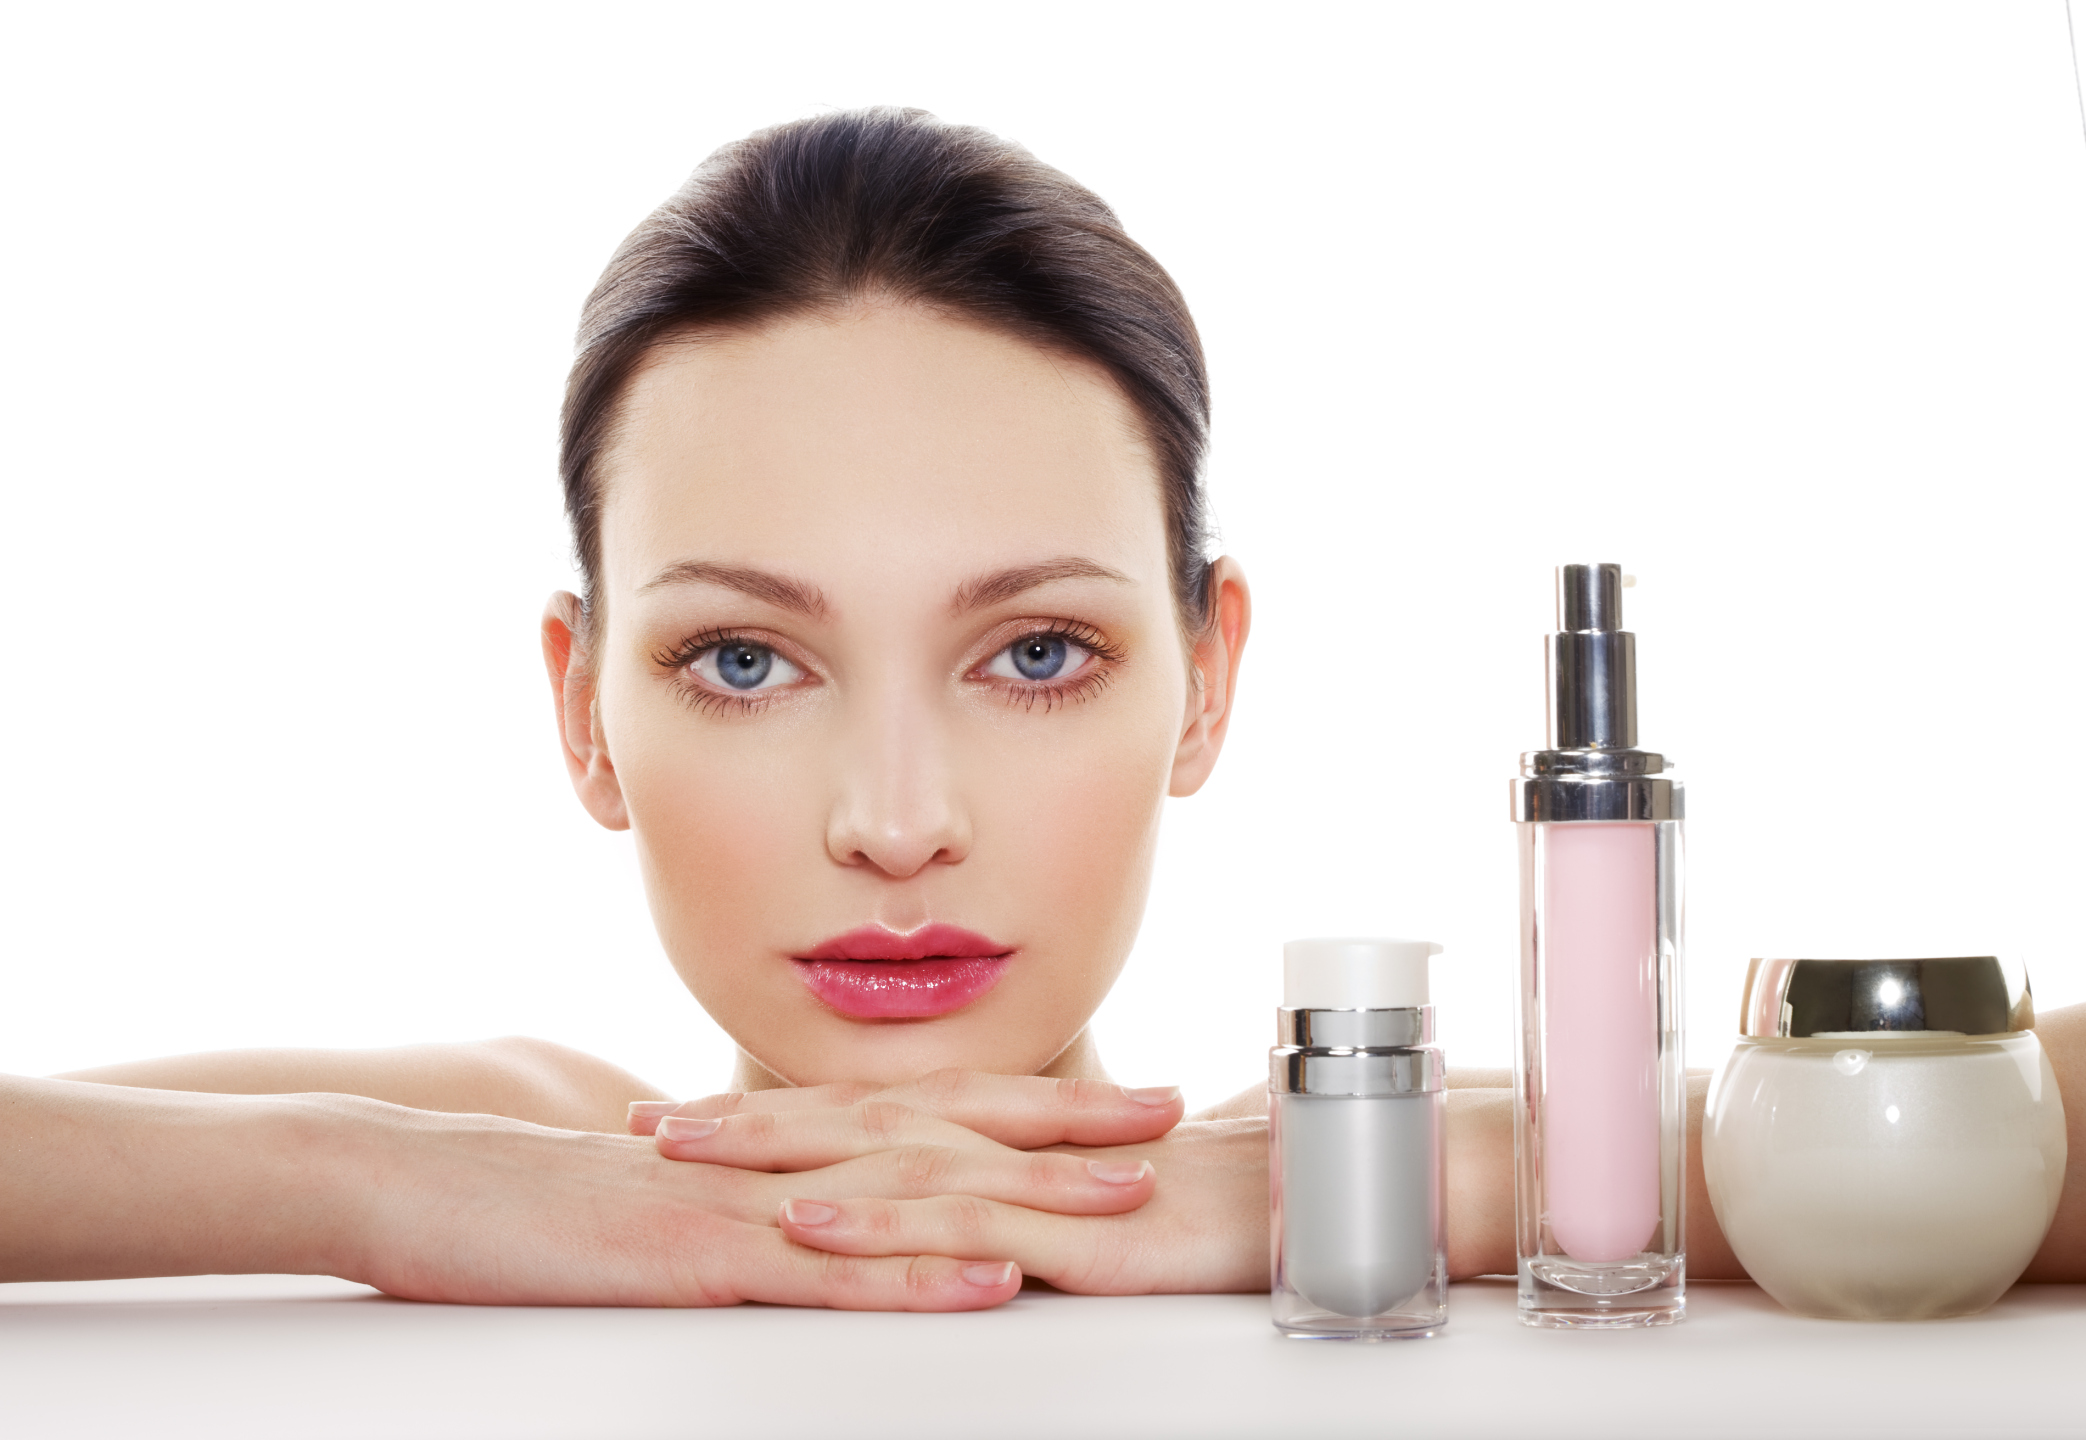 Embrace Anti-Aging With The Right Skincare Routine